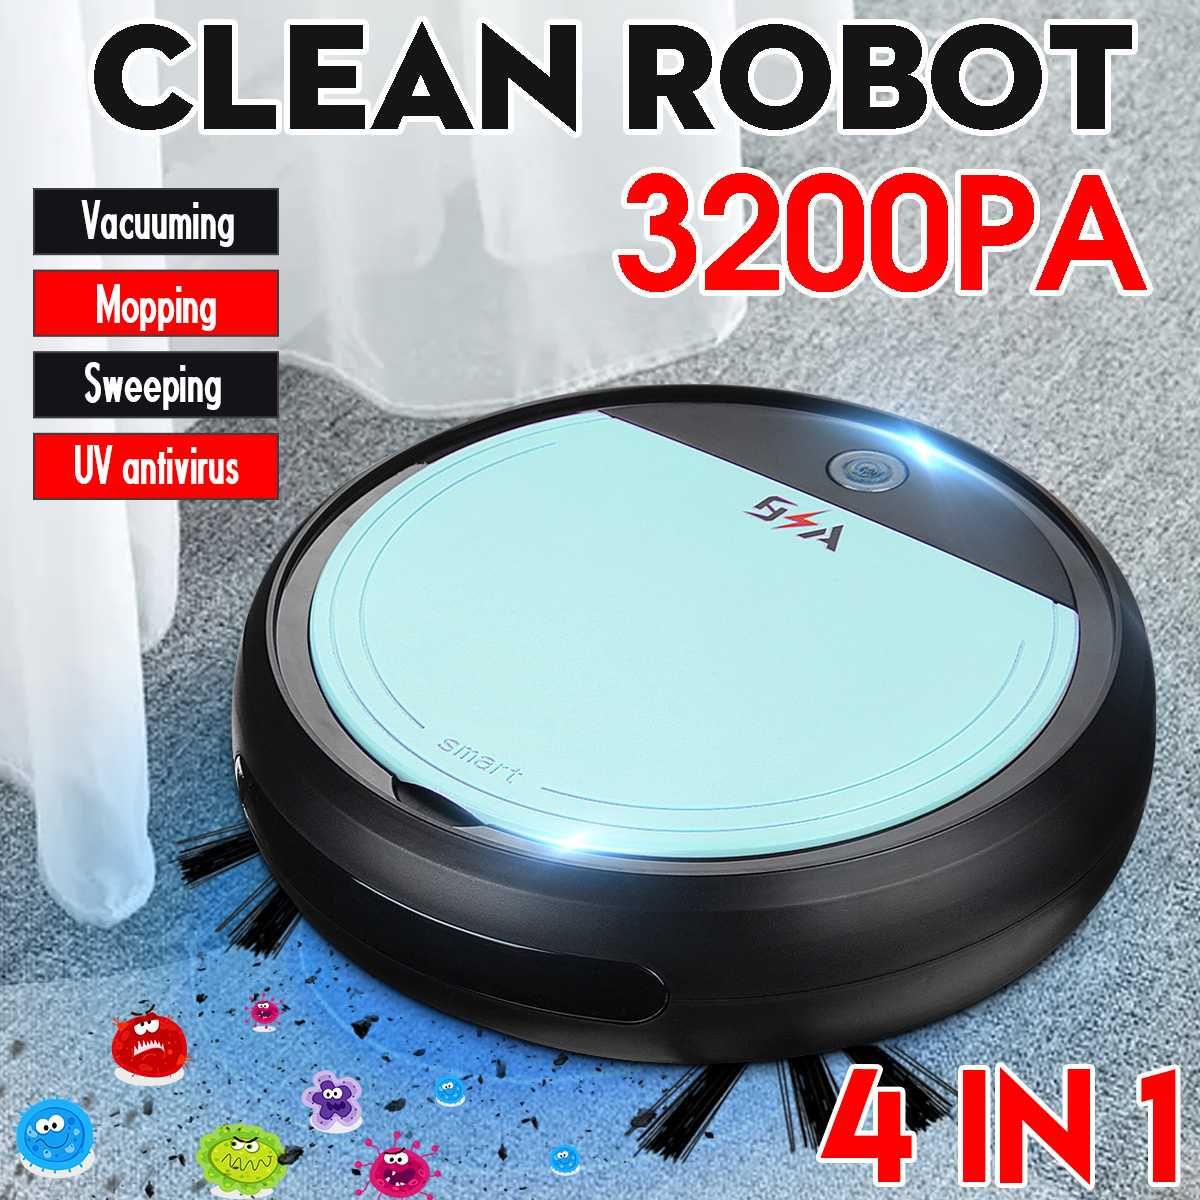 Rechargeable Smart Robot  4 in 1 Vacuum Cleaner Auto Smart Sweeping Robot UV Sterilizer Strong Suction Sweeper Vacuum Cleaners|Vacuum Cleaners| |  - title=